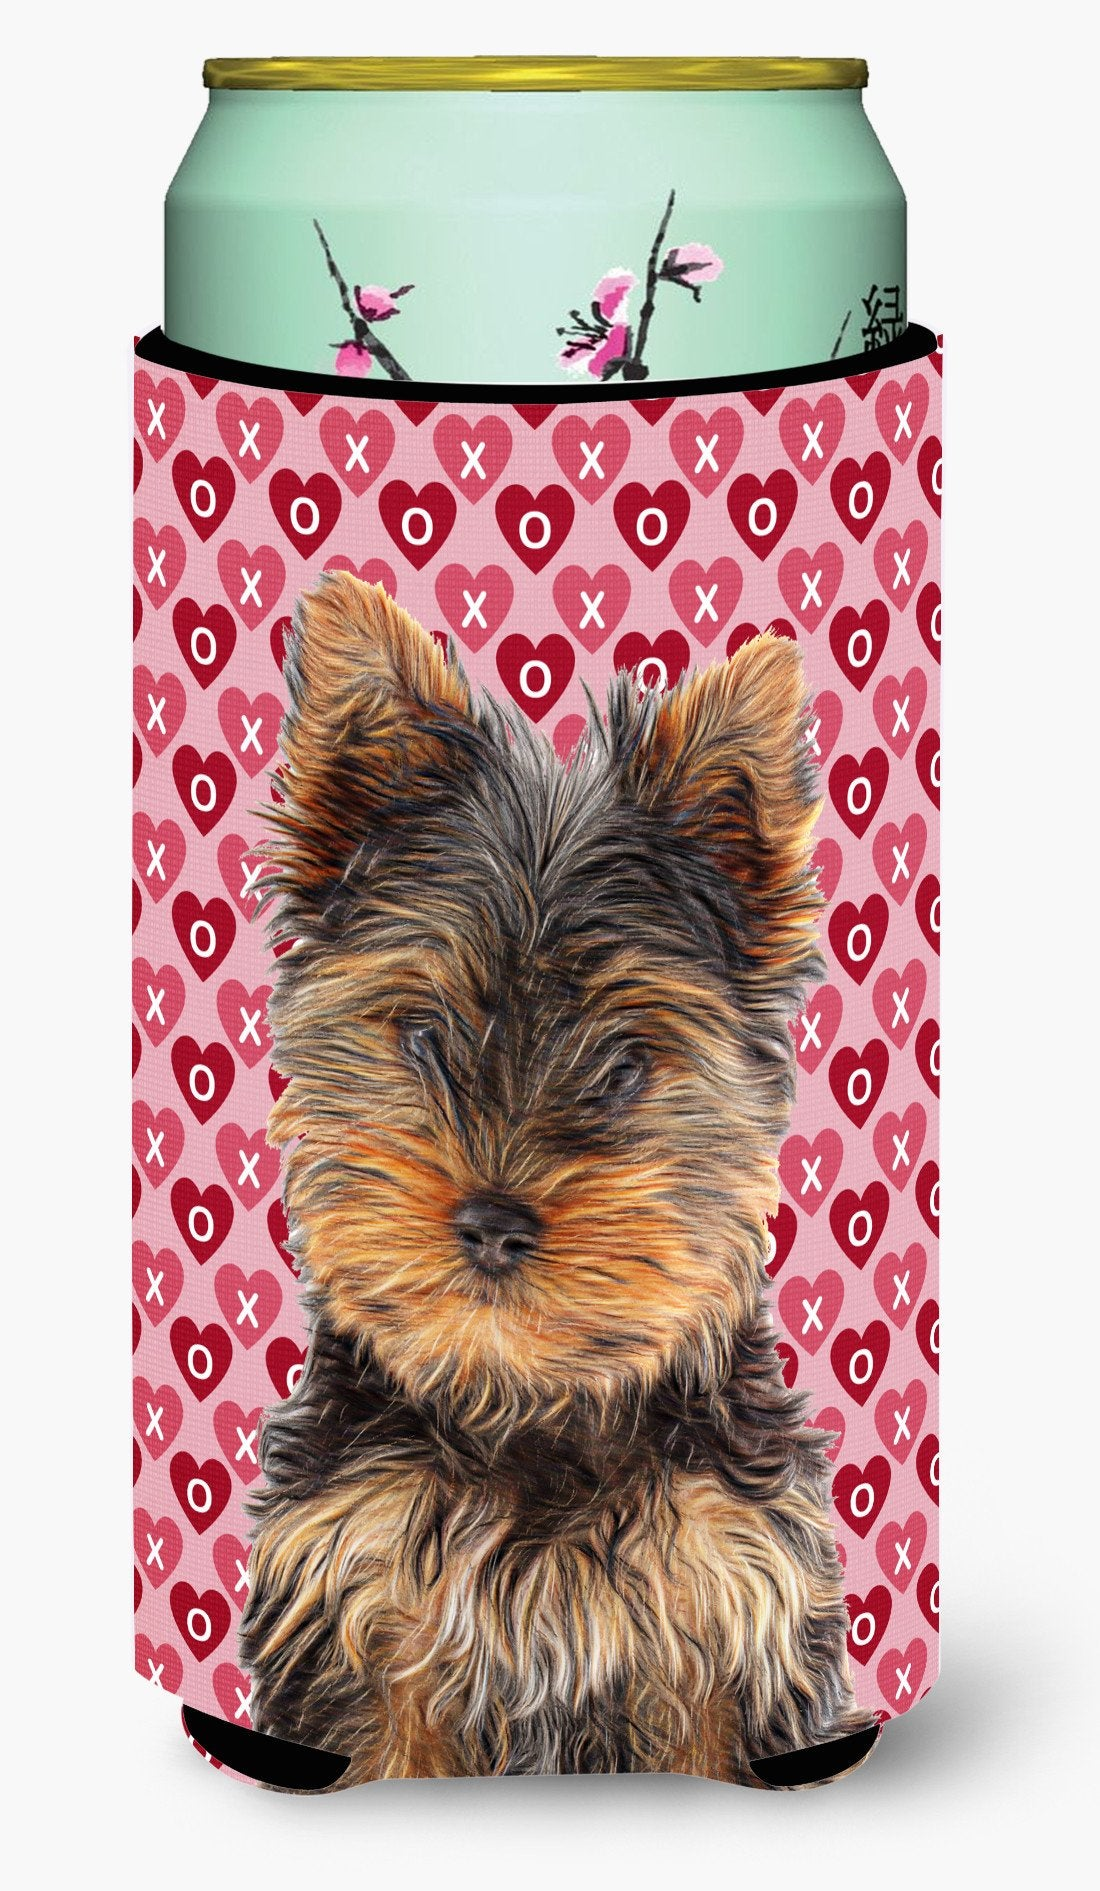 Hearts Love and Valentine's Day Yorkie Puppy / Yorkshire Terrier Tall Boy Beverage Insulator Hugger KJ1195TBC by Caroline's Treasures